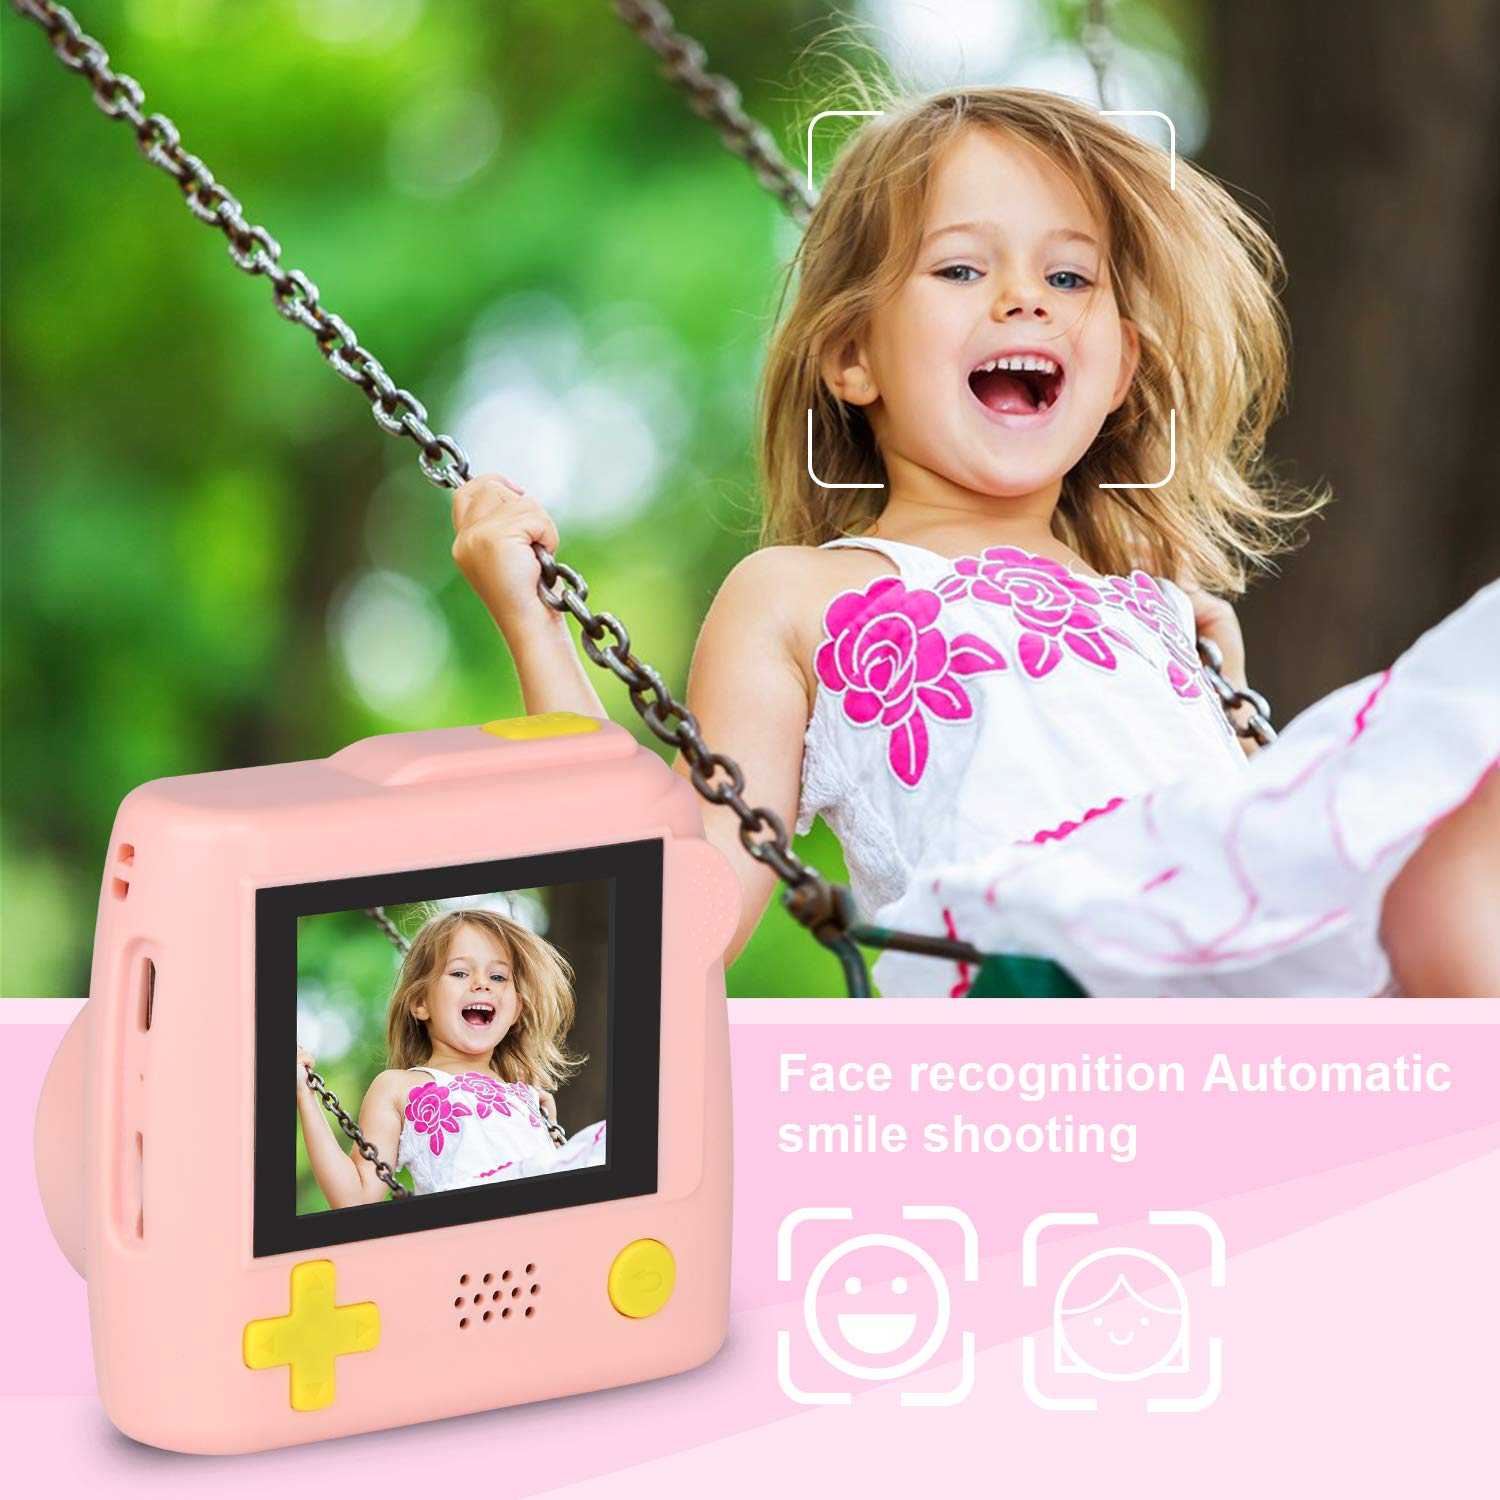 Kids Camera Gifts for 4-8 Year Old boys or girls, Great Gift Mini Child Camcorder for children with Soft Silicone Shell and 5 Mega pixel front lens 2.0 inch HD screen (32G TF card not included) by eyesen (Image #4)